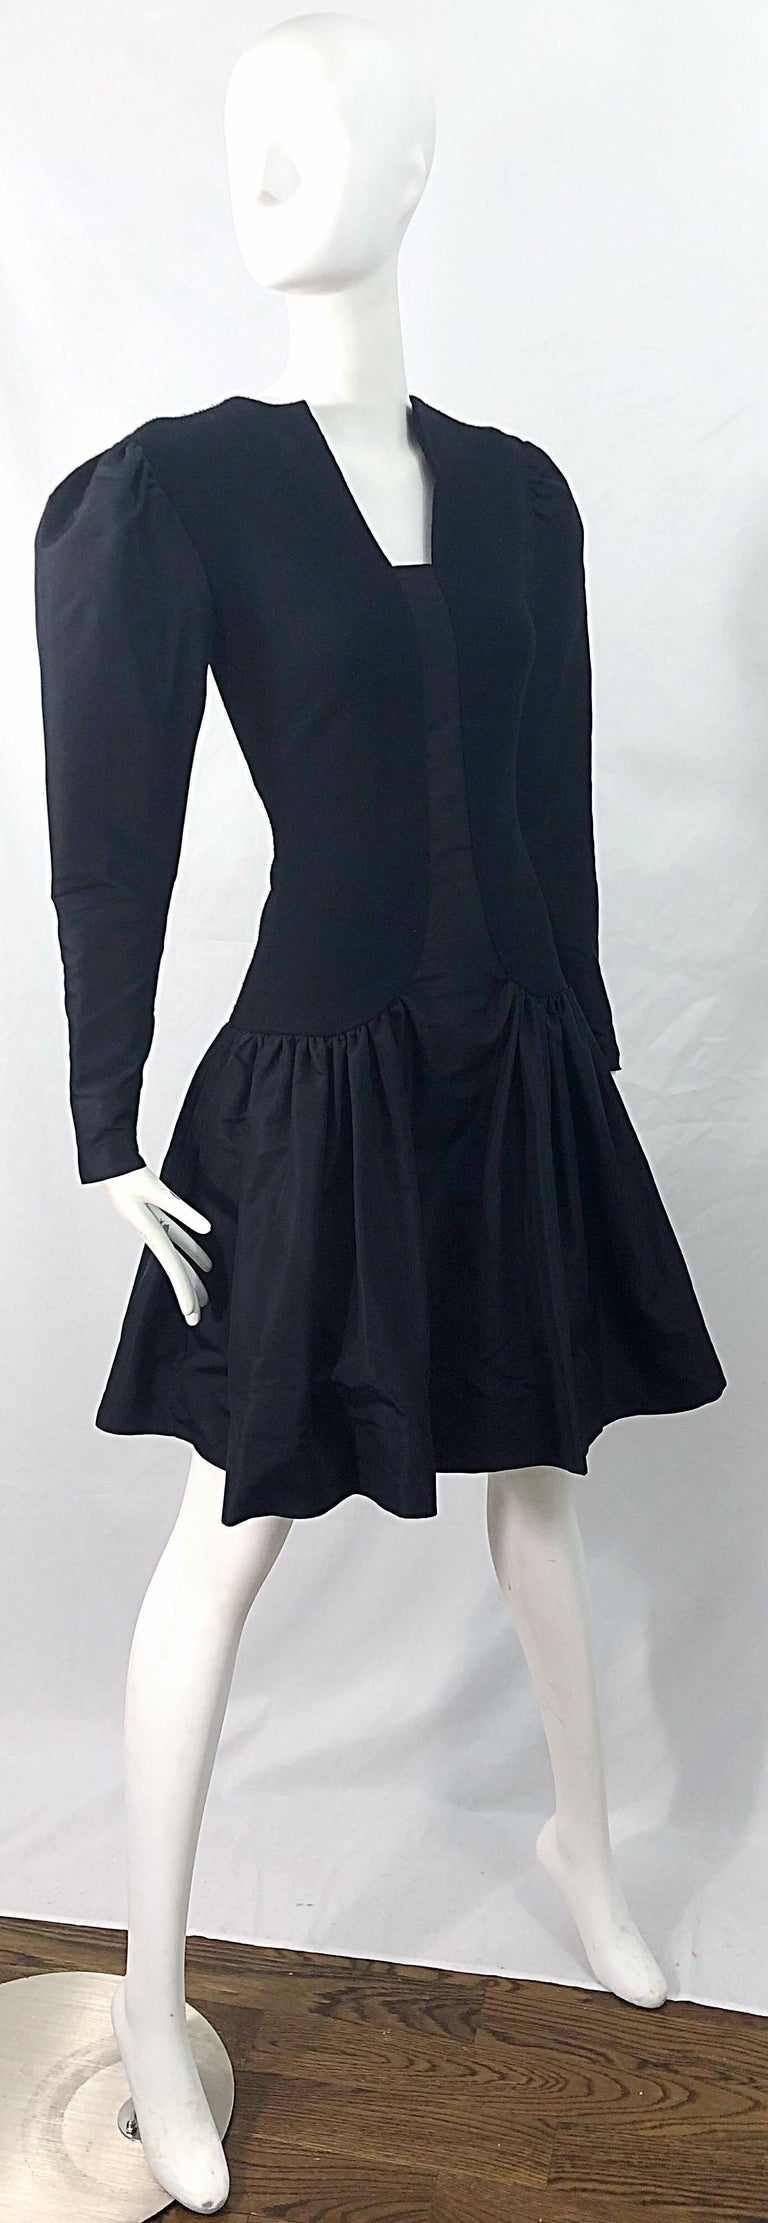 1980s Pauline Trigere Black Wool Silk Taffeta Avant Garde Vintage 80s Dress For Sale 8